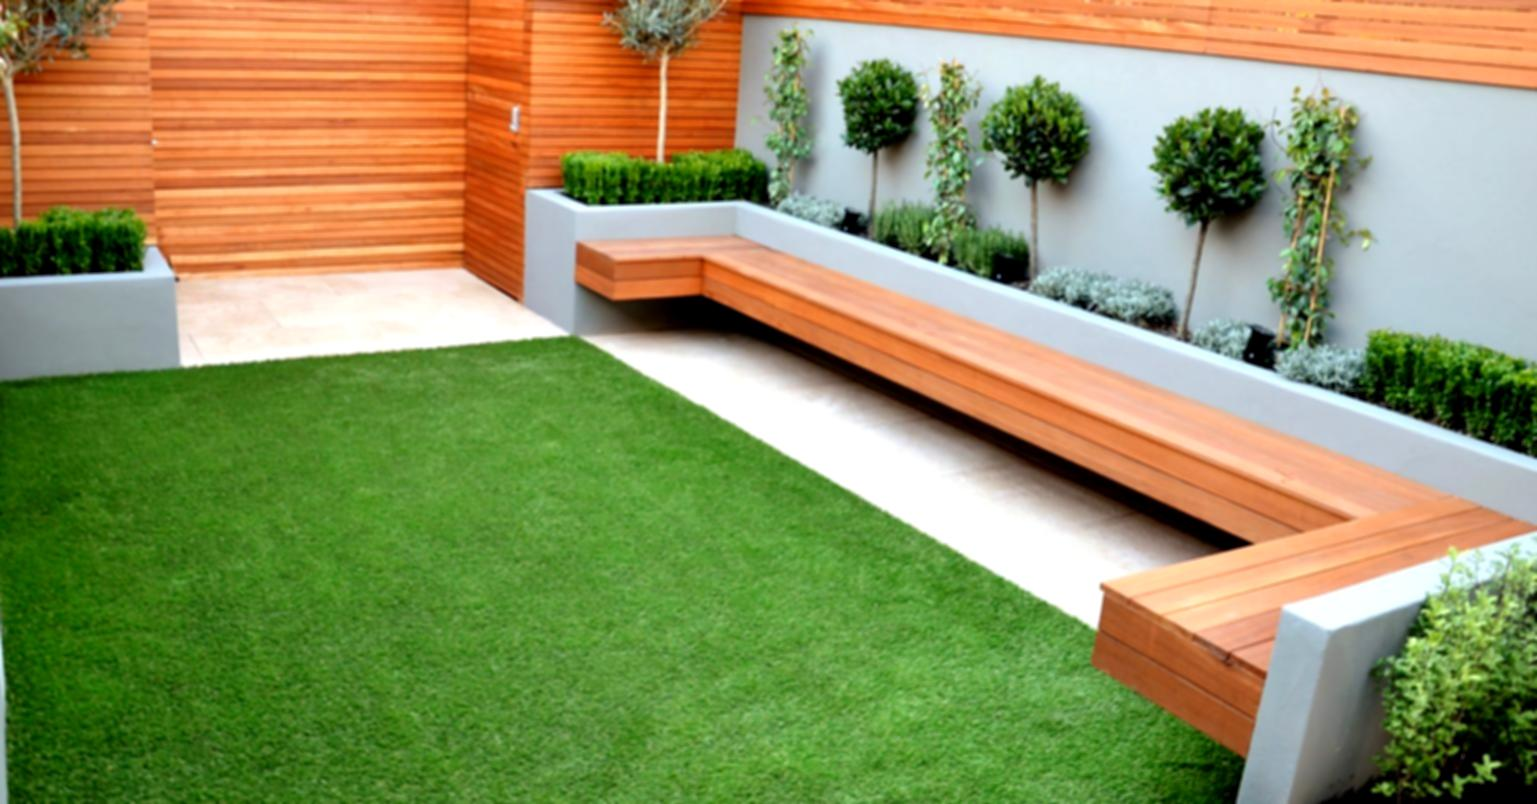 Add Long Sectional Oak Bench for Small Garden Ideas with Gree Grass Area and Stylish Wooden Wall Fence